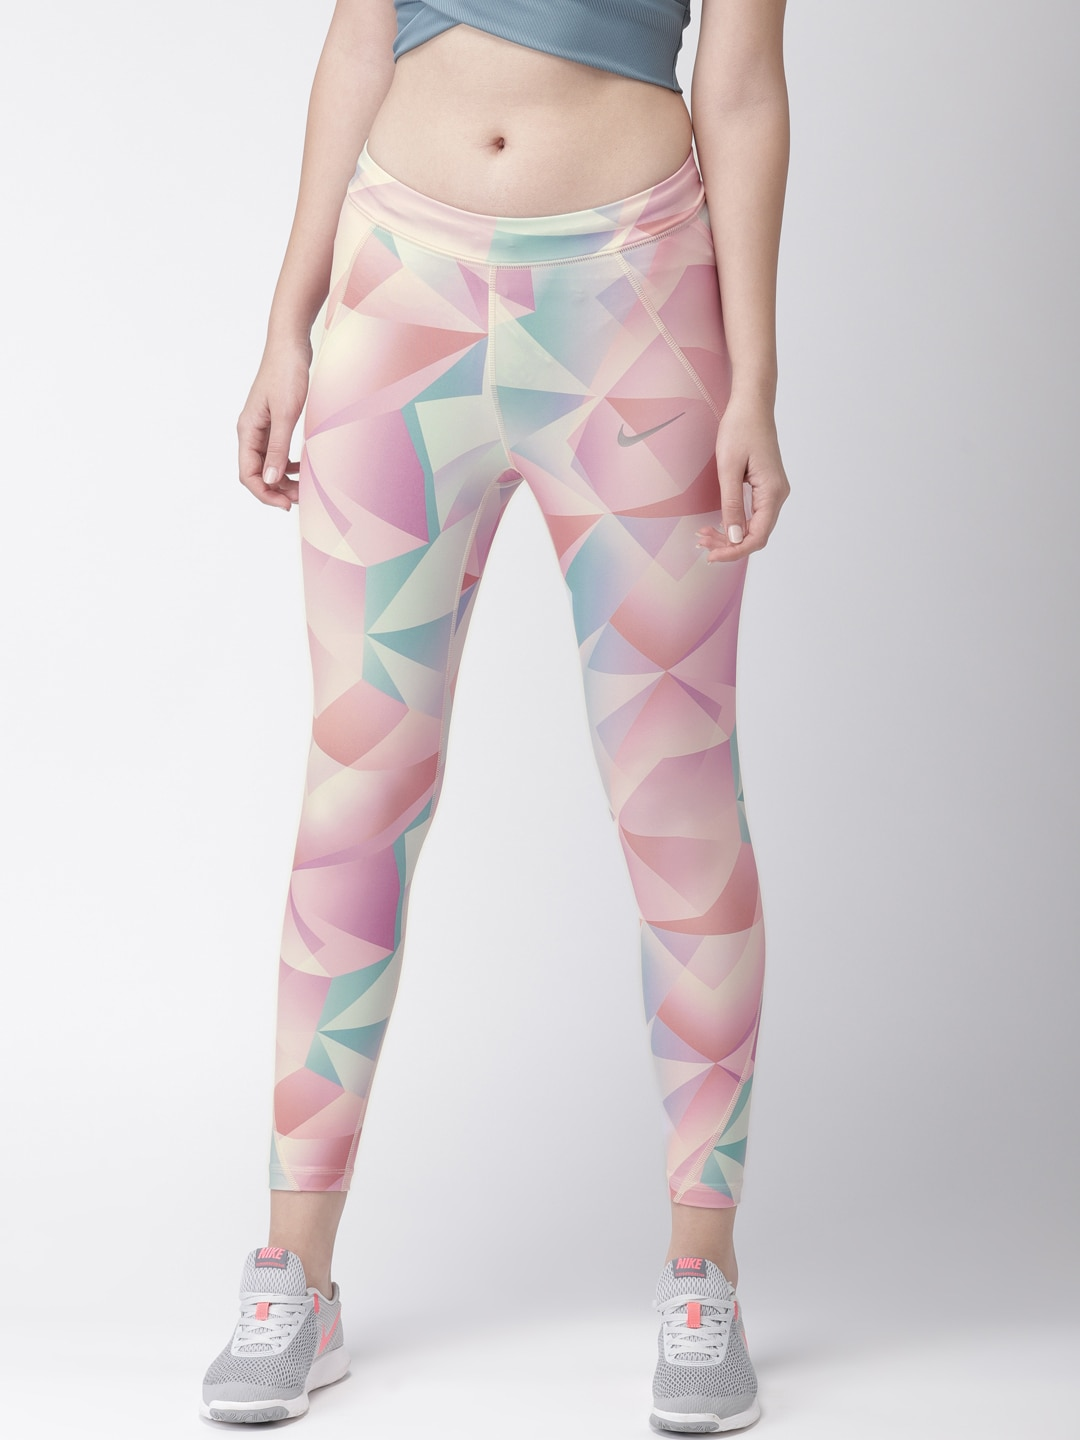 Nike Women Tights - Buy Nike Women Tights online in India e9138f3c6